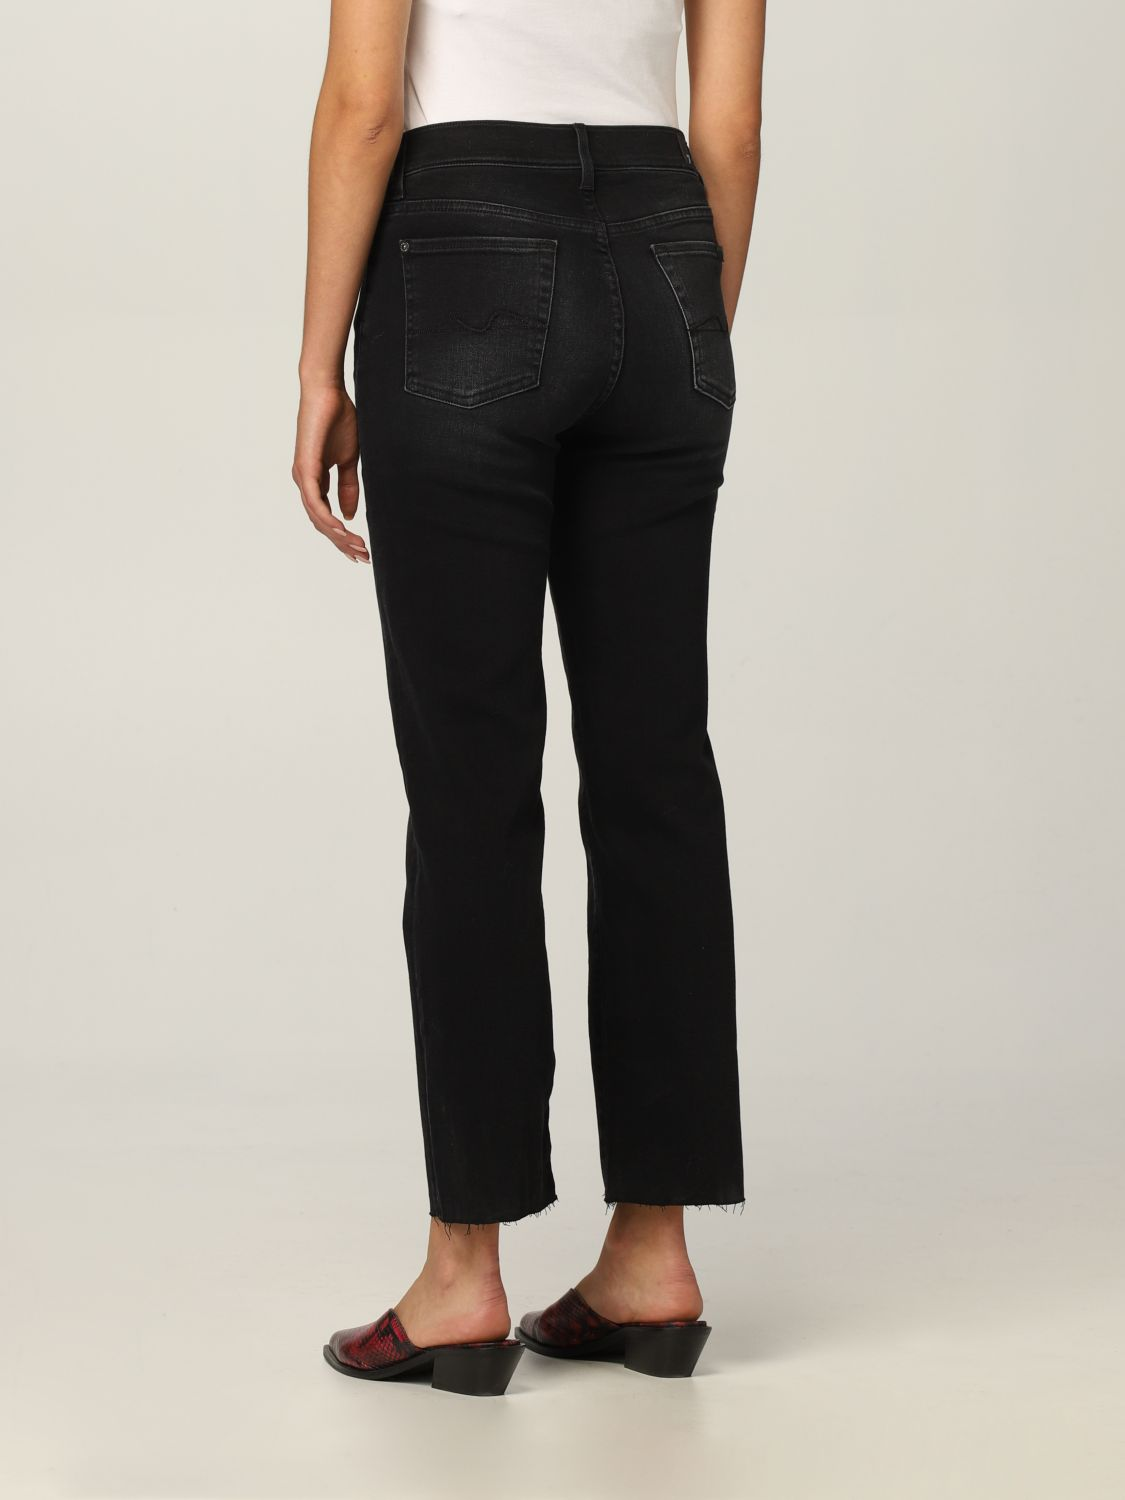 Jeans 7 For All Mankind: Jeans donna 7 For All Mankind nero 2